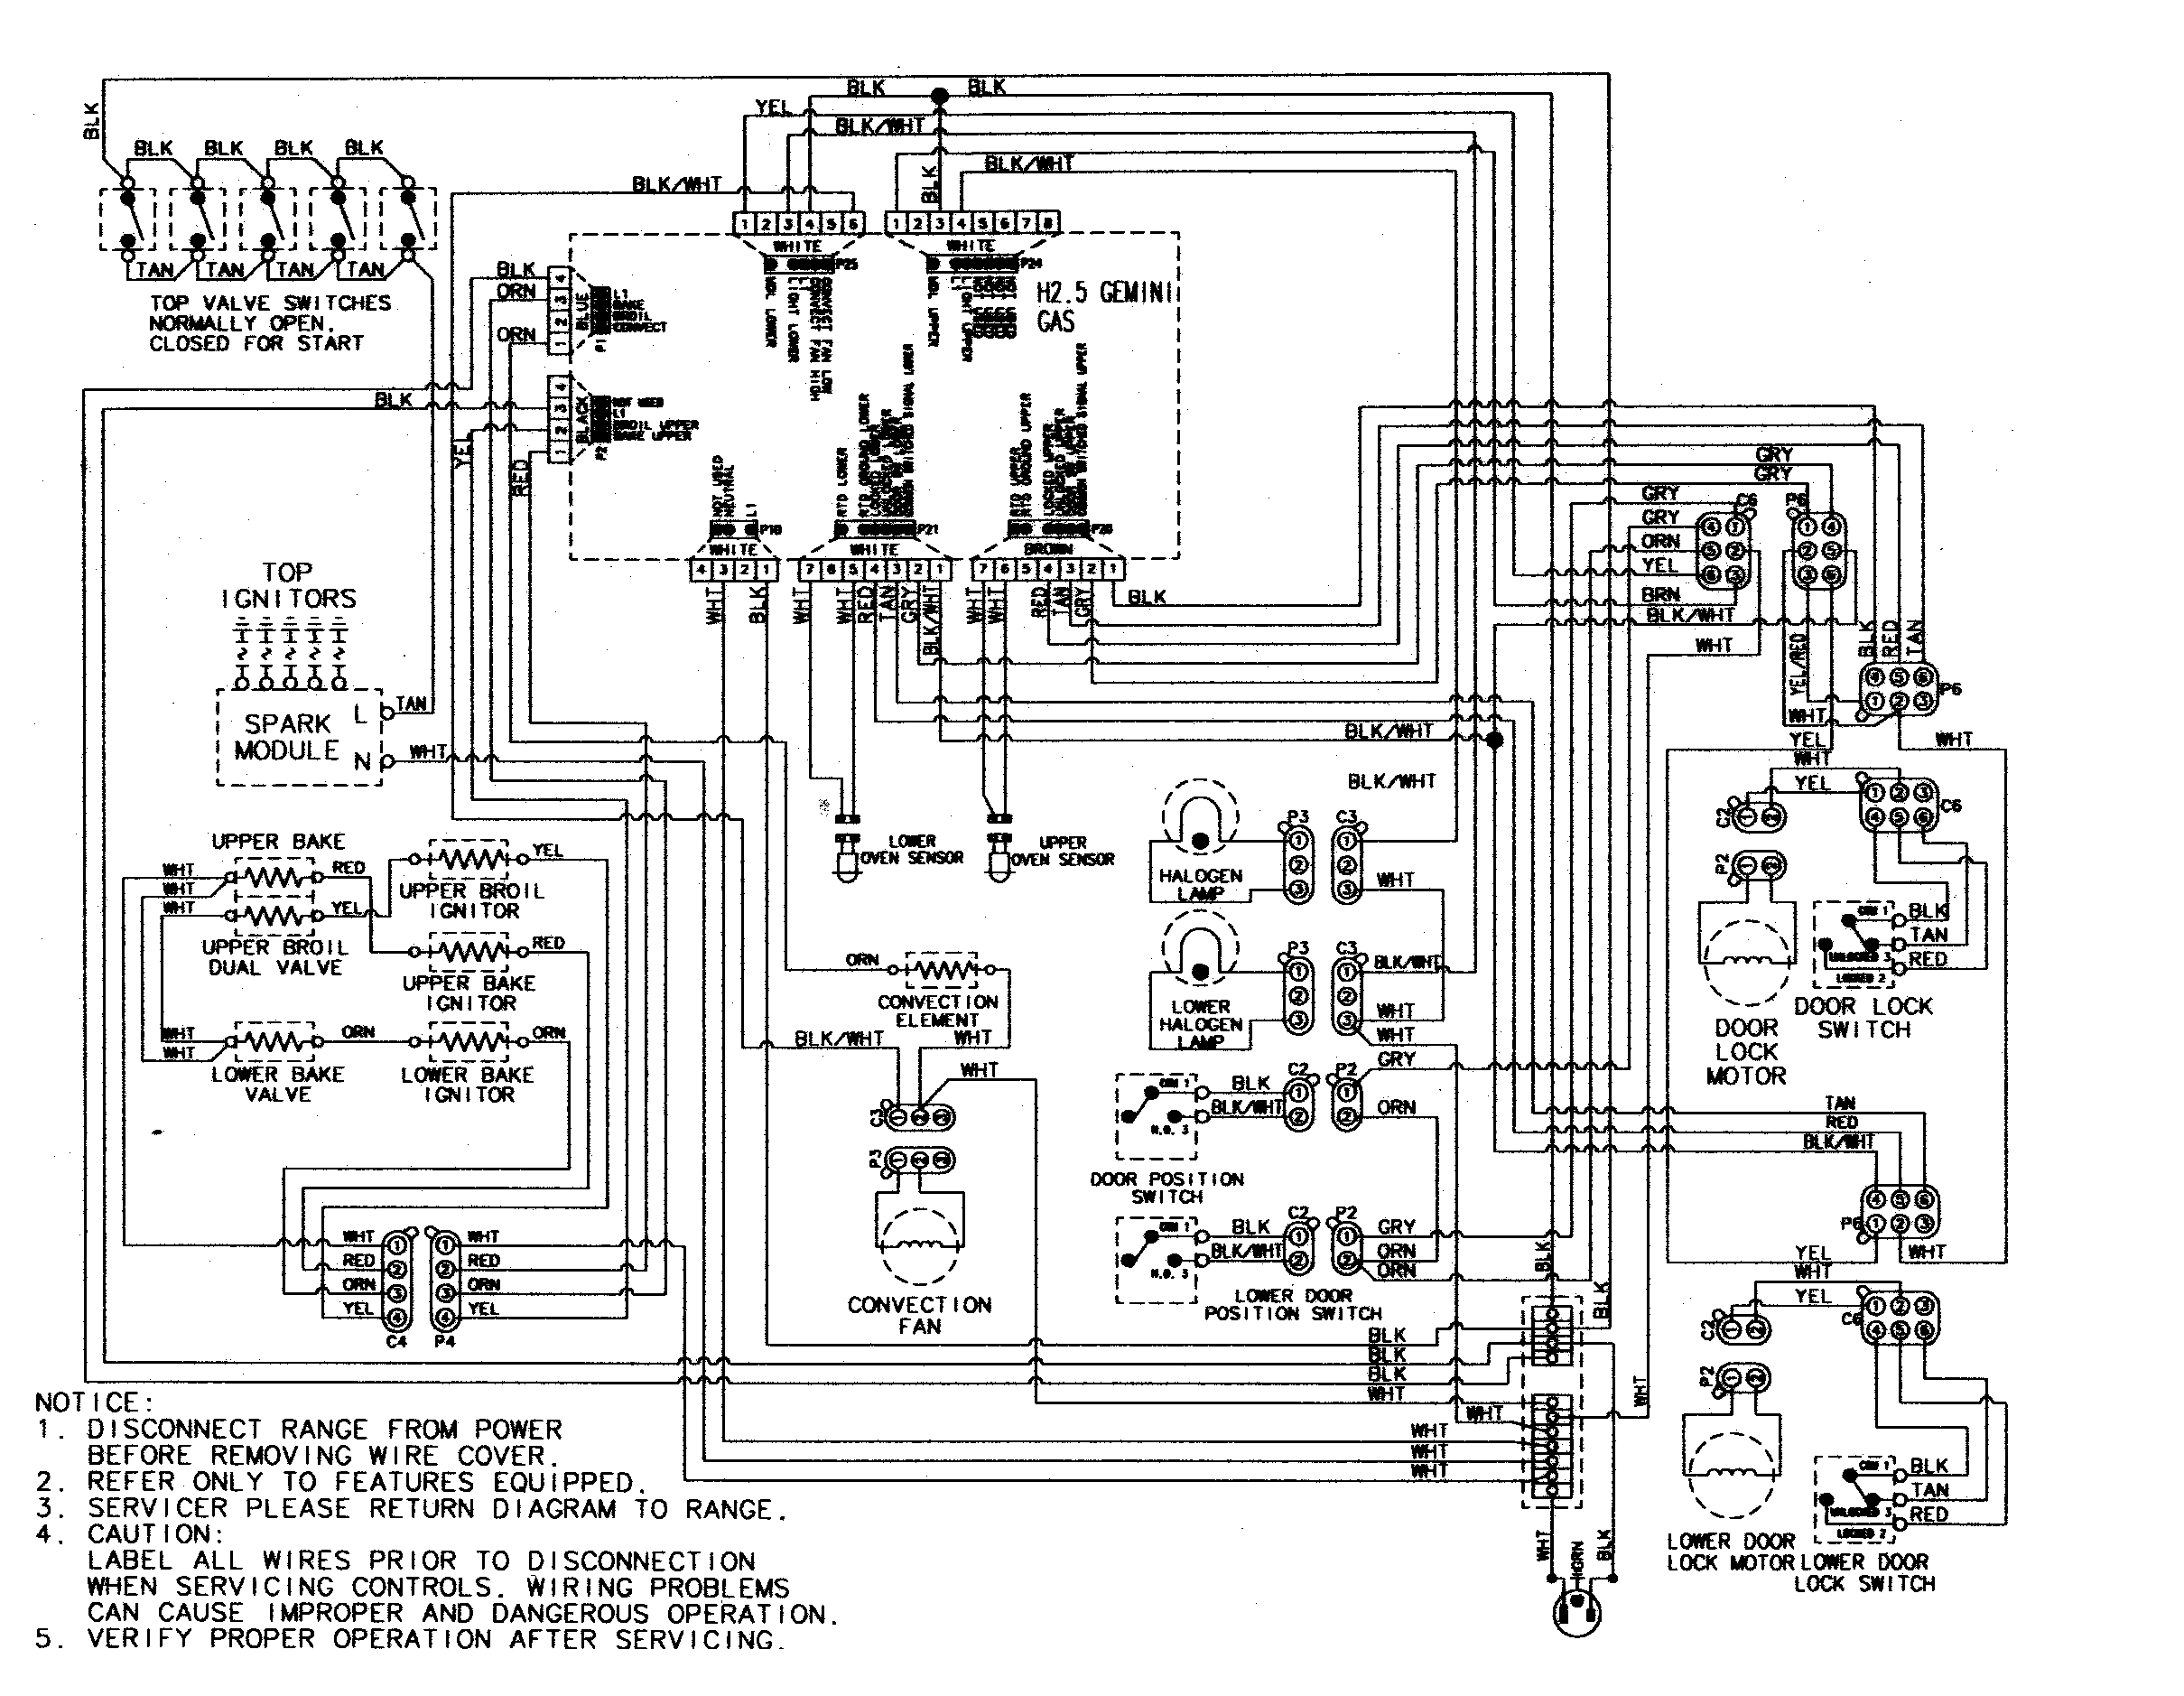 wiring information at series 13 14 parts wiring diagram ge side by side refrigerators the wiring diagram maytag dishwasher wiring diagram at creativeand.co